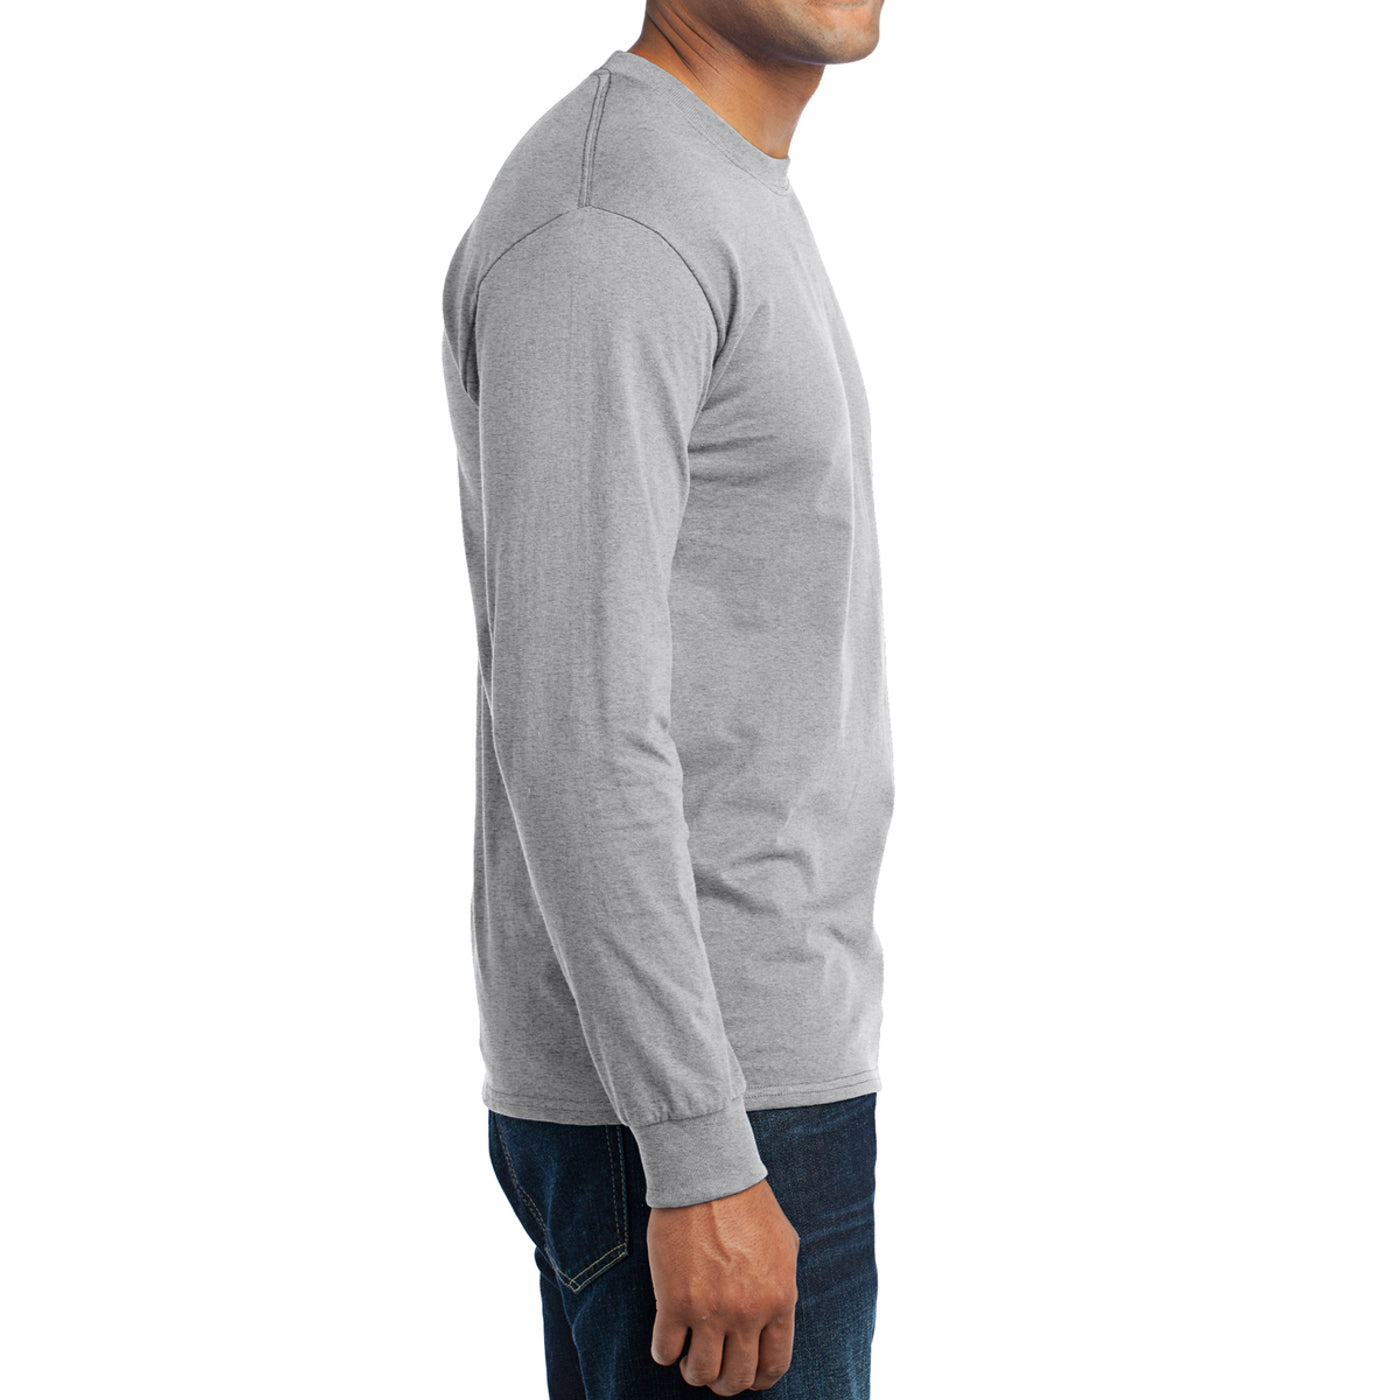 Men's Long Sleeve Core Blend Tee - Ash – Side